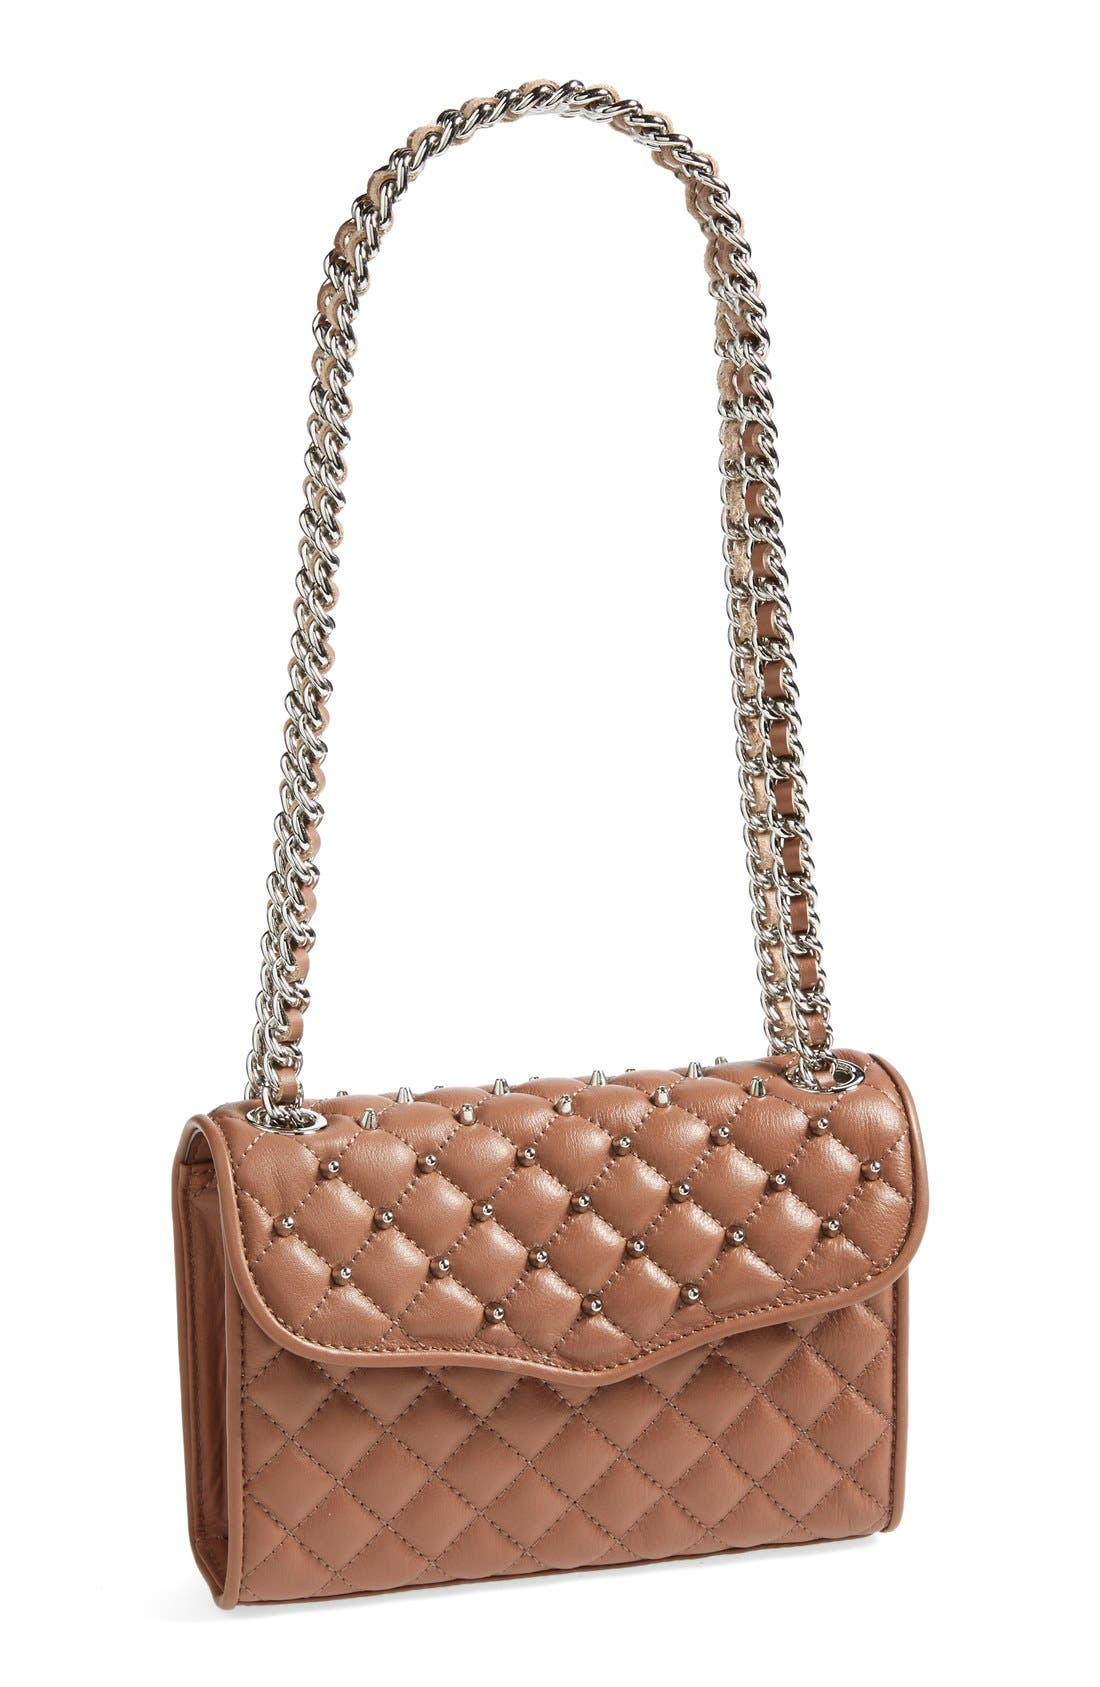 Main Image - Rebecca Minkoff 'Mini Affair with Studs' Convertible Crossbody Bag